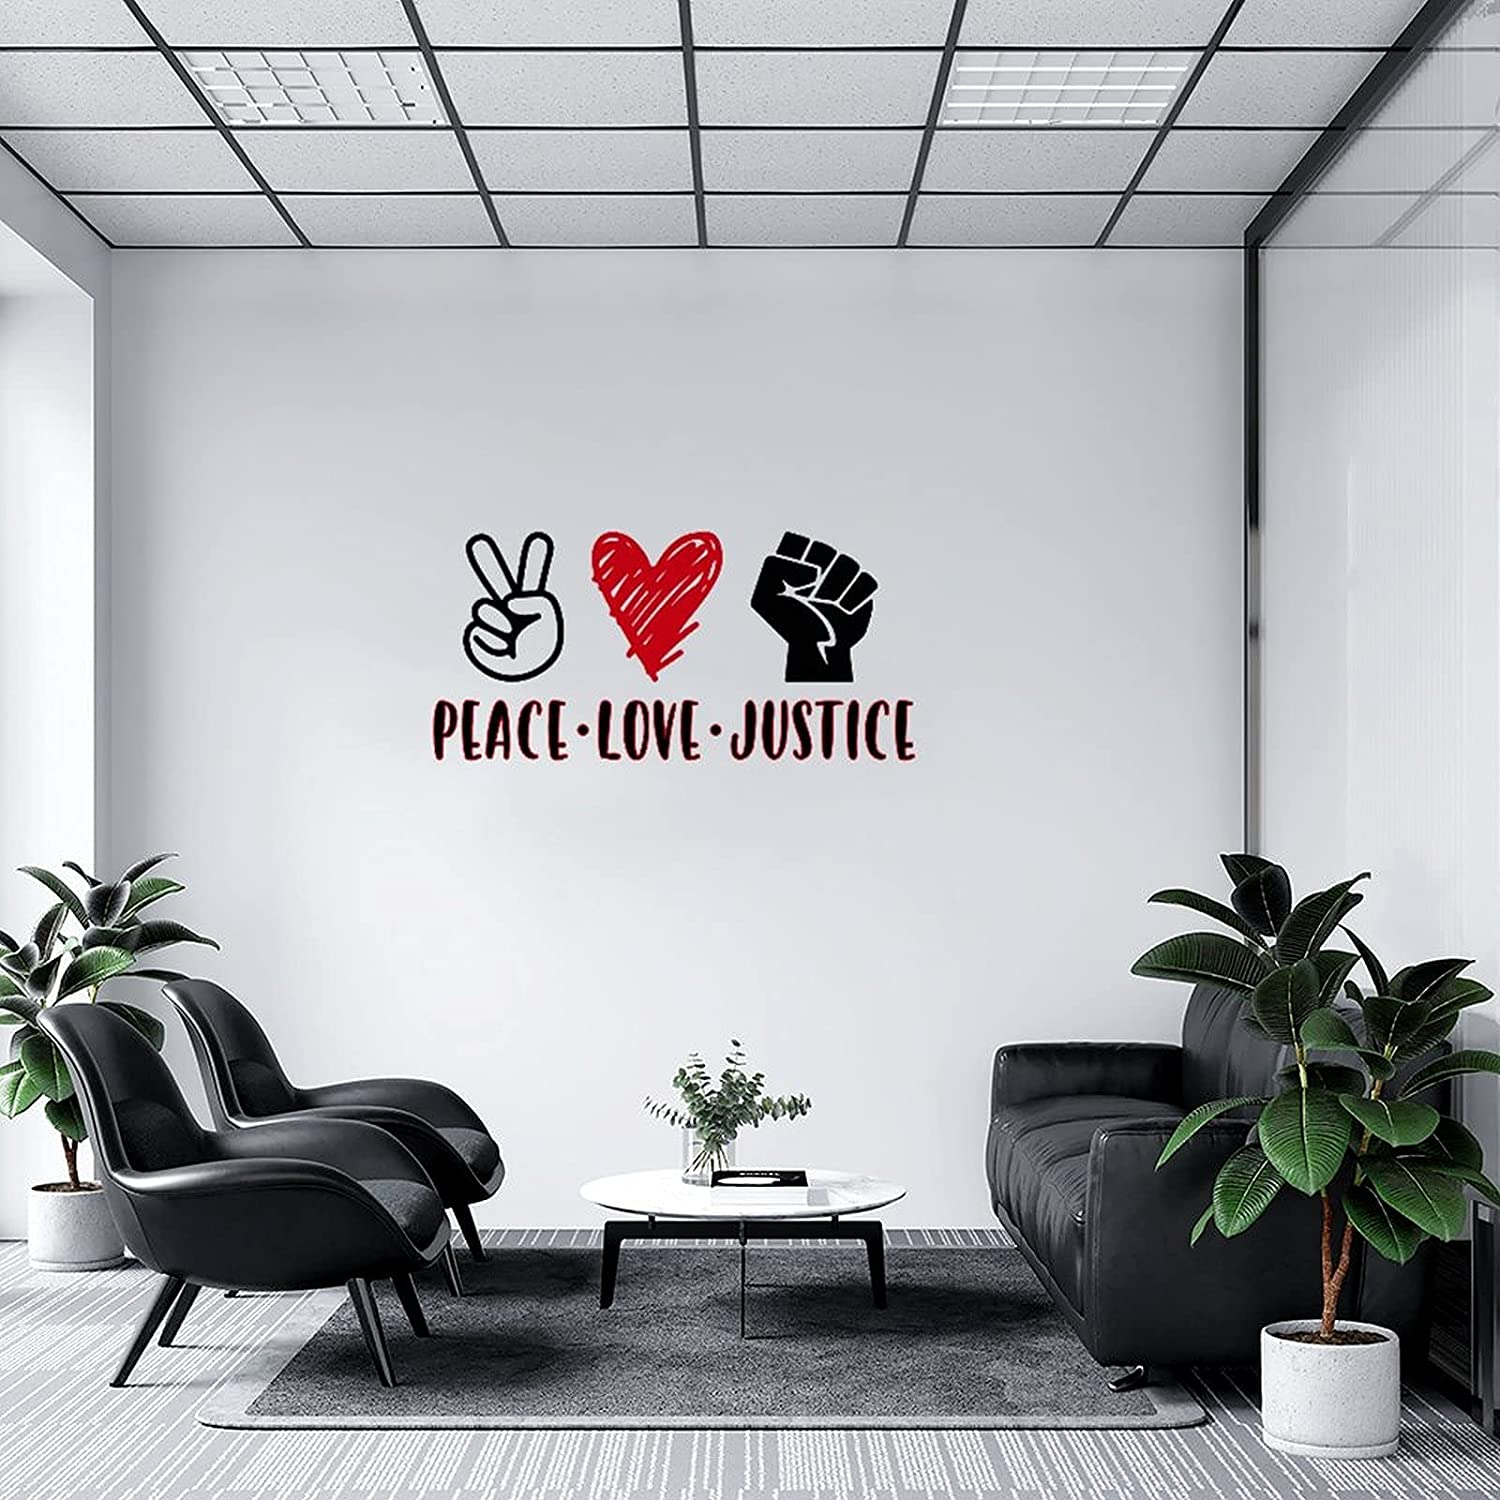 Wall Decal Peace Love Justice Bedroom Girls Decor New Shipping Free Shipping Austin Mall Room for